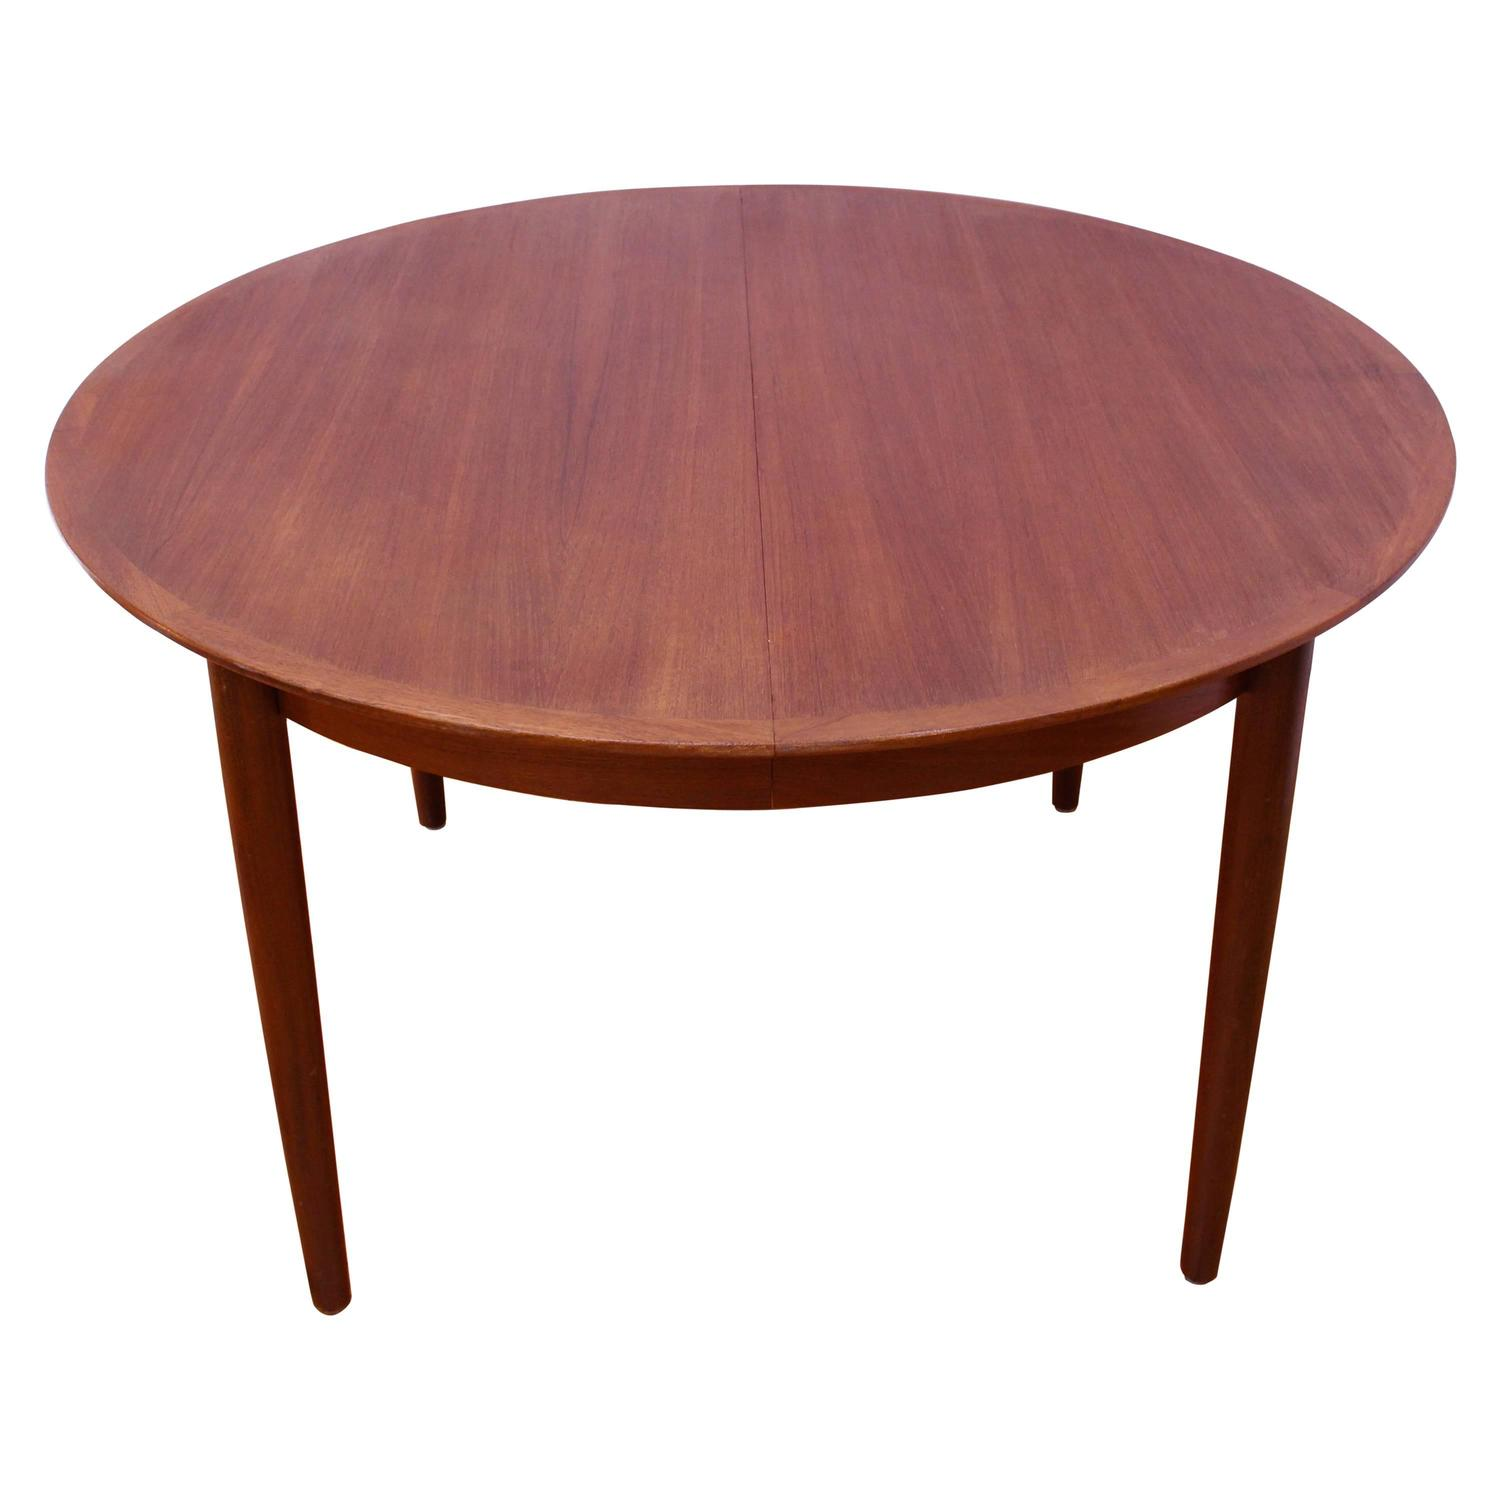 Danish Mid Century Modern Teak Dining Table At 1stdibs